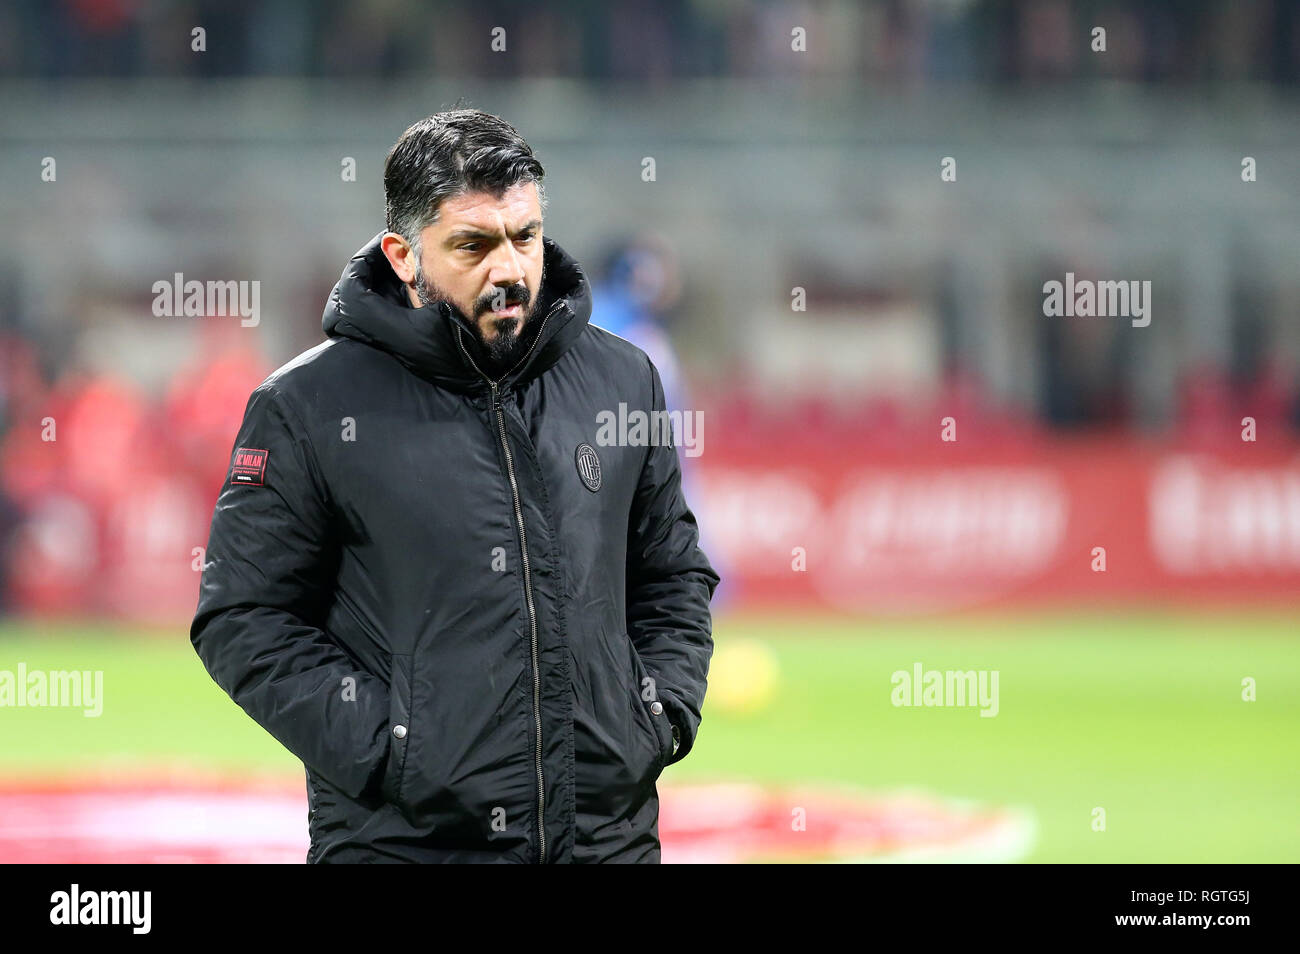 Milano Italy 29th January 2019 Gennaro Gattuso Head Coach Of Ac Milan Looks On Before The Coppa Italia Quarter Finals Football Match Between A Stock Photo Alamy